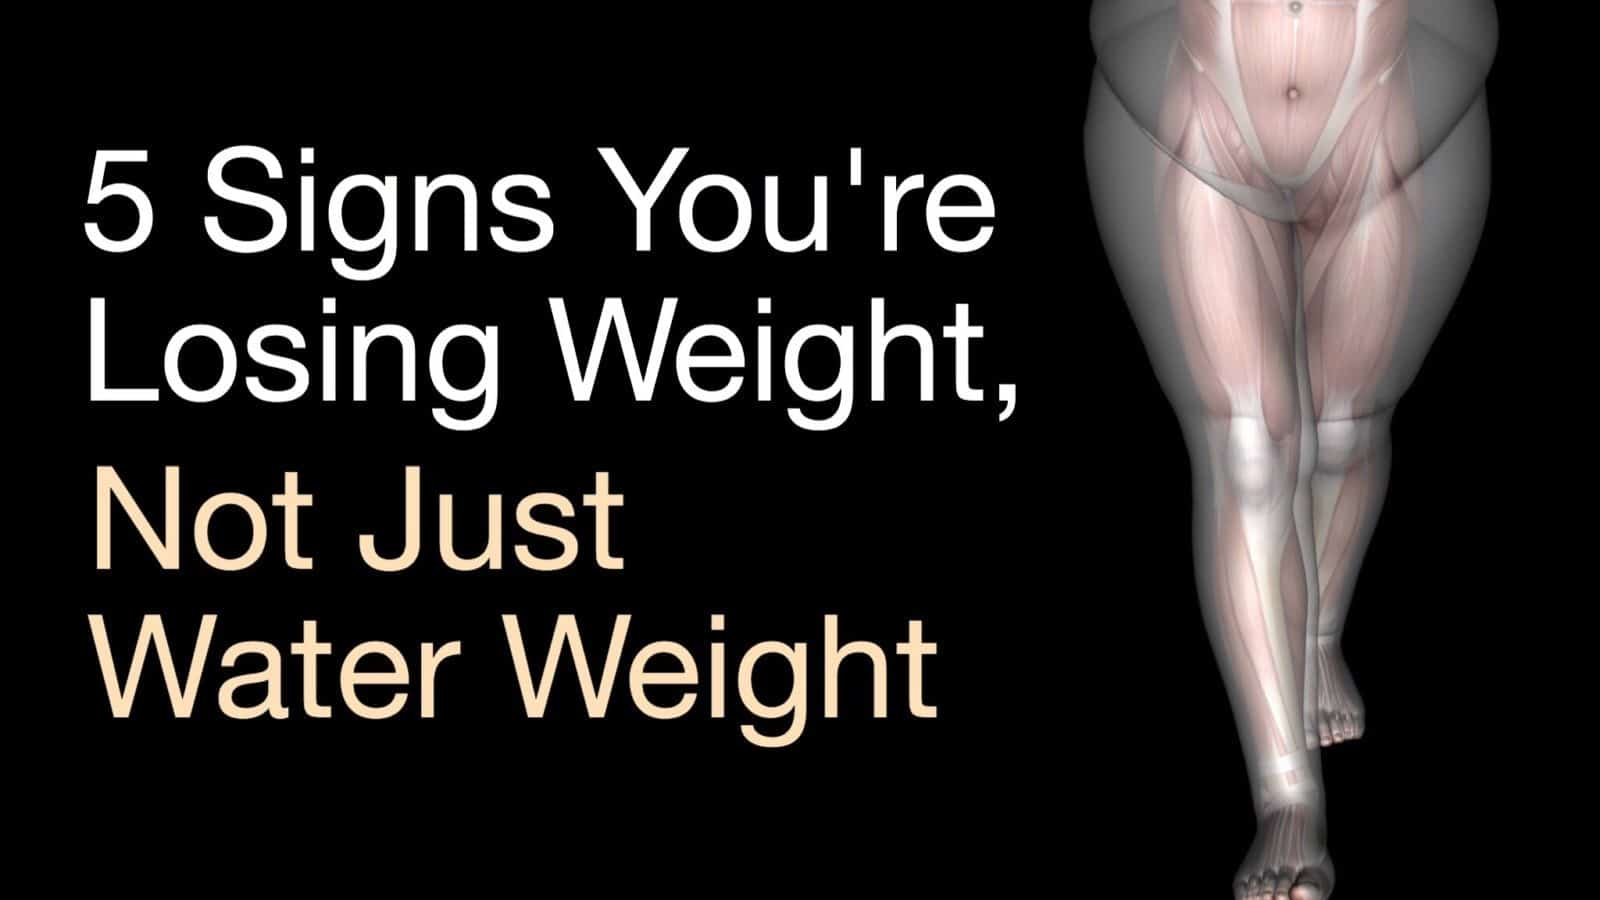 5 Signs You're Losing Weight, Not Just Water Weight